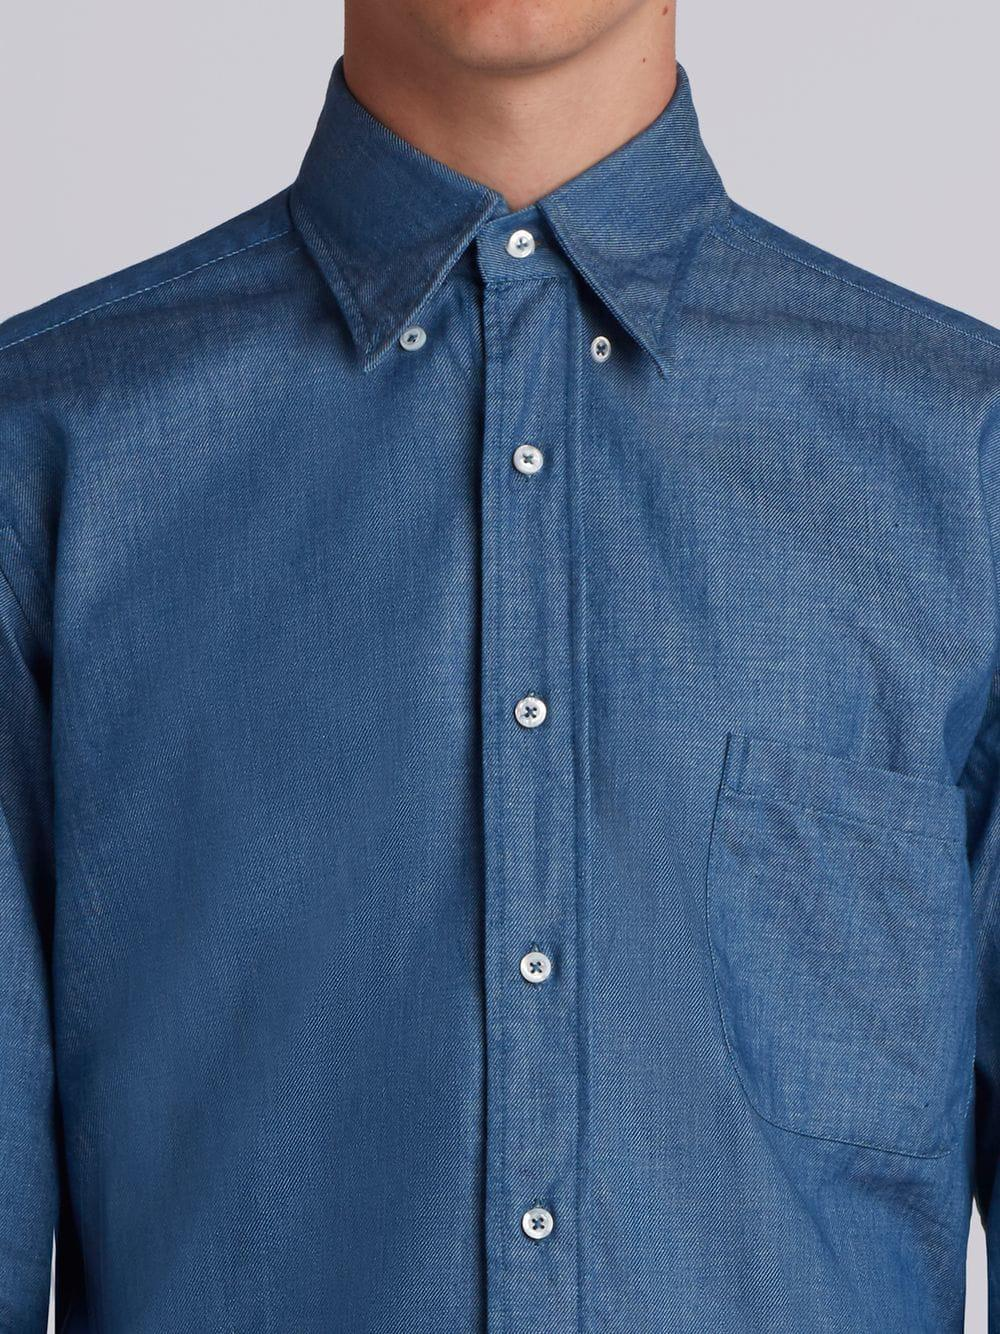 Thom Browne Regular Fit Long Sleeve Shirt In Shirting Denim In Blue